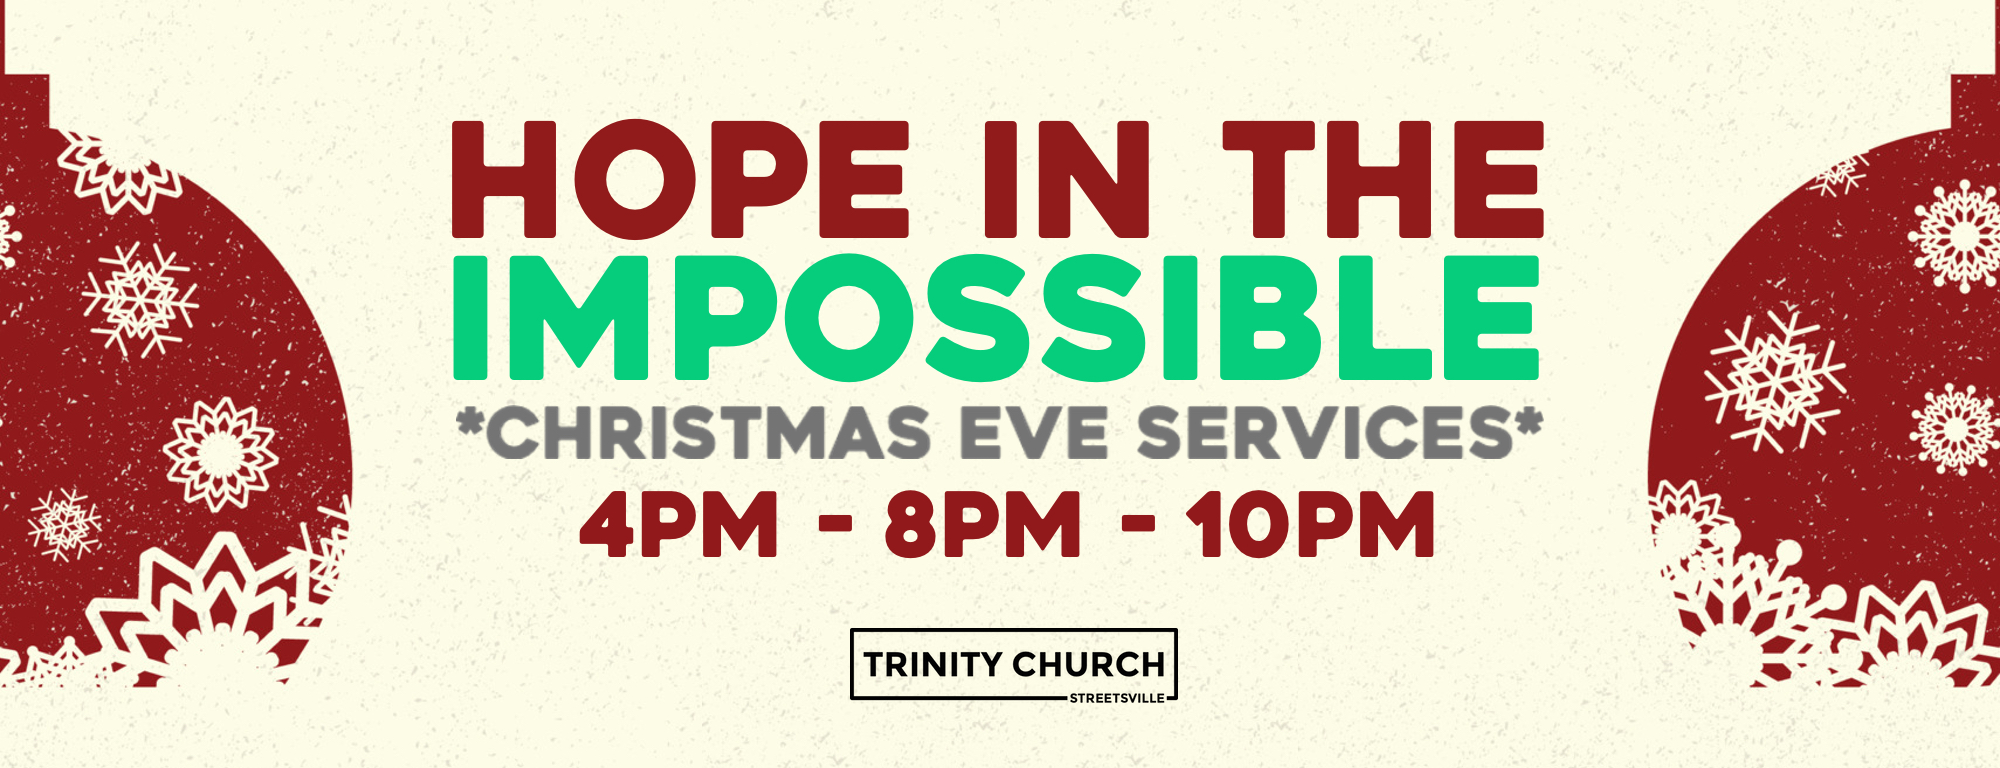 we invite you to our christmas eve services. 4pm is our kids service... and 8pm+10pm is our christmas celebration services. all are welcome.